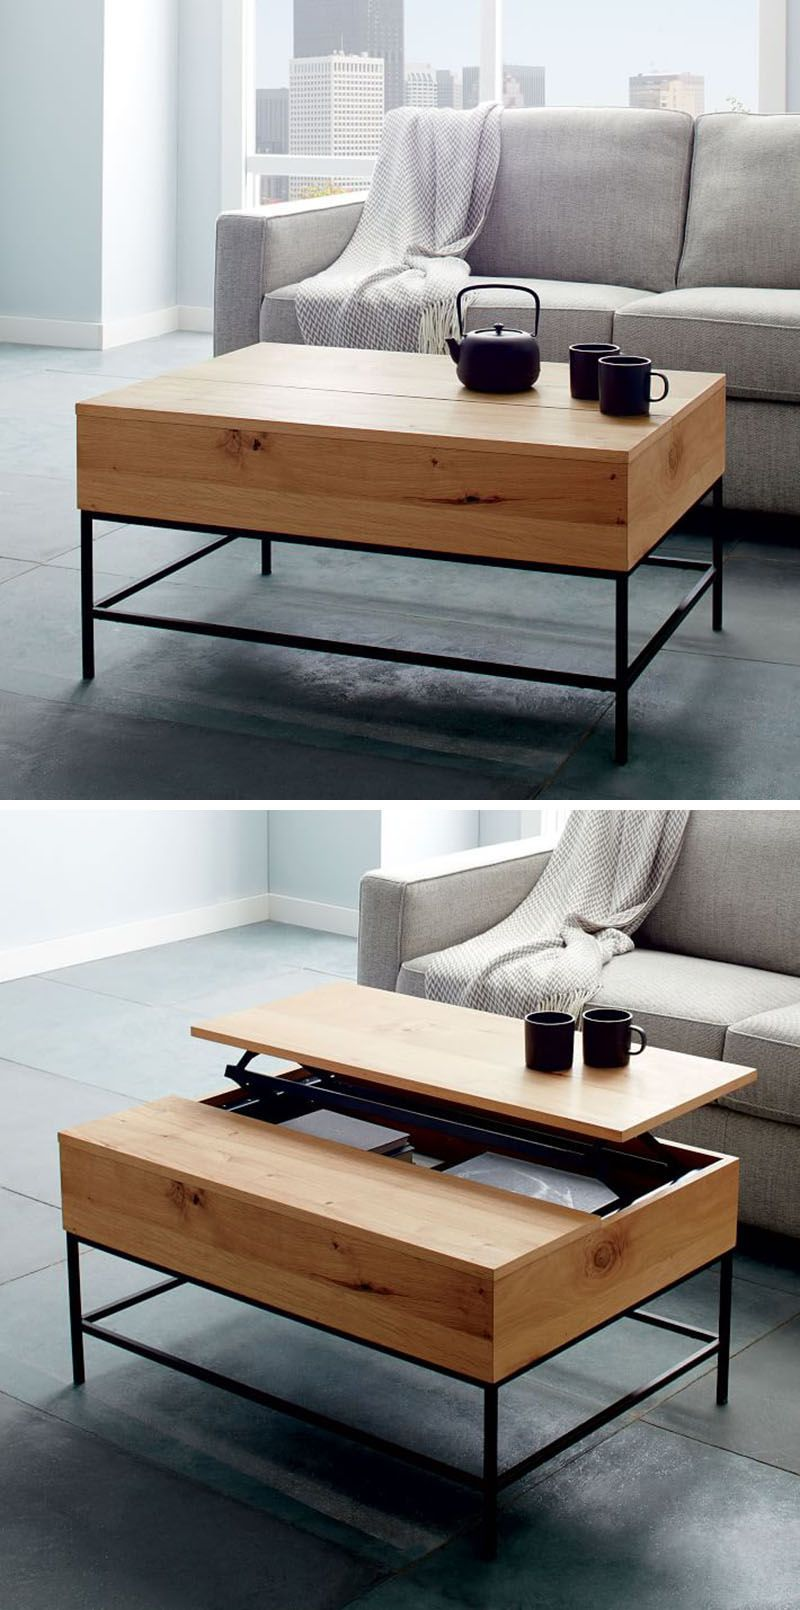 The Cristallo table from Resource Furniture transforms from a ...